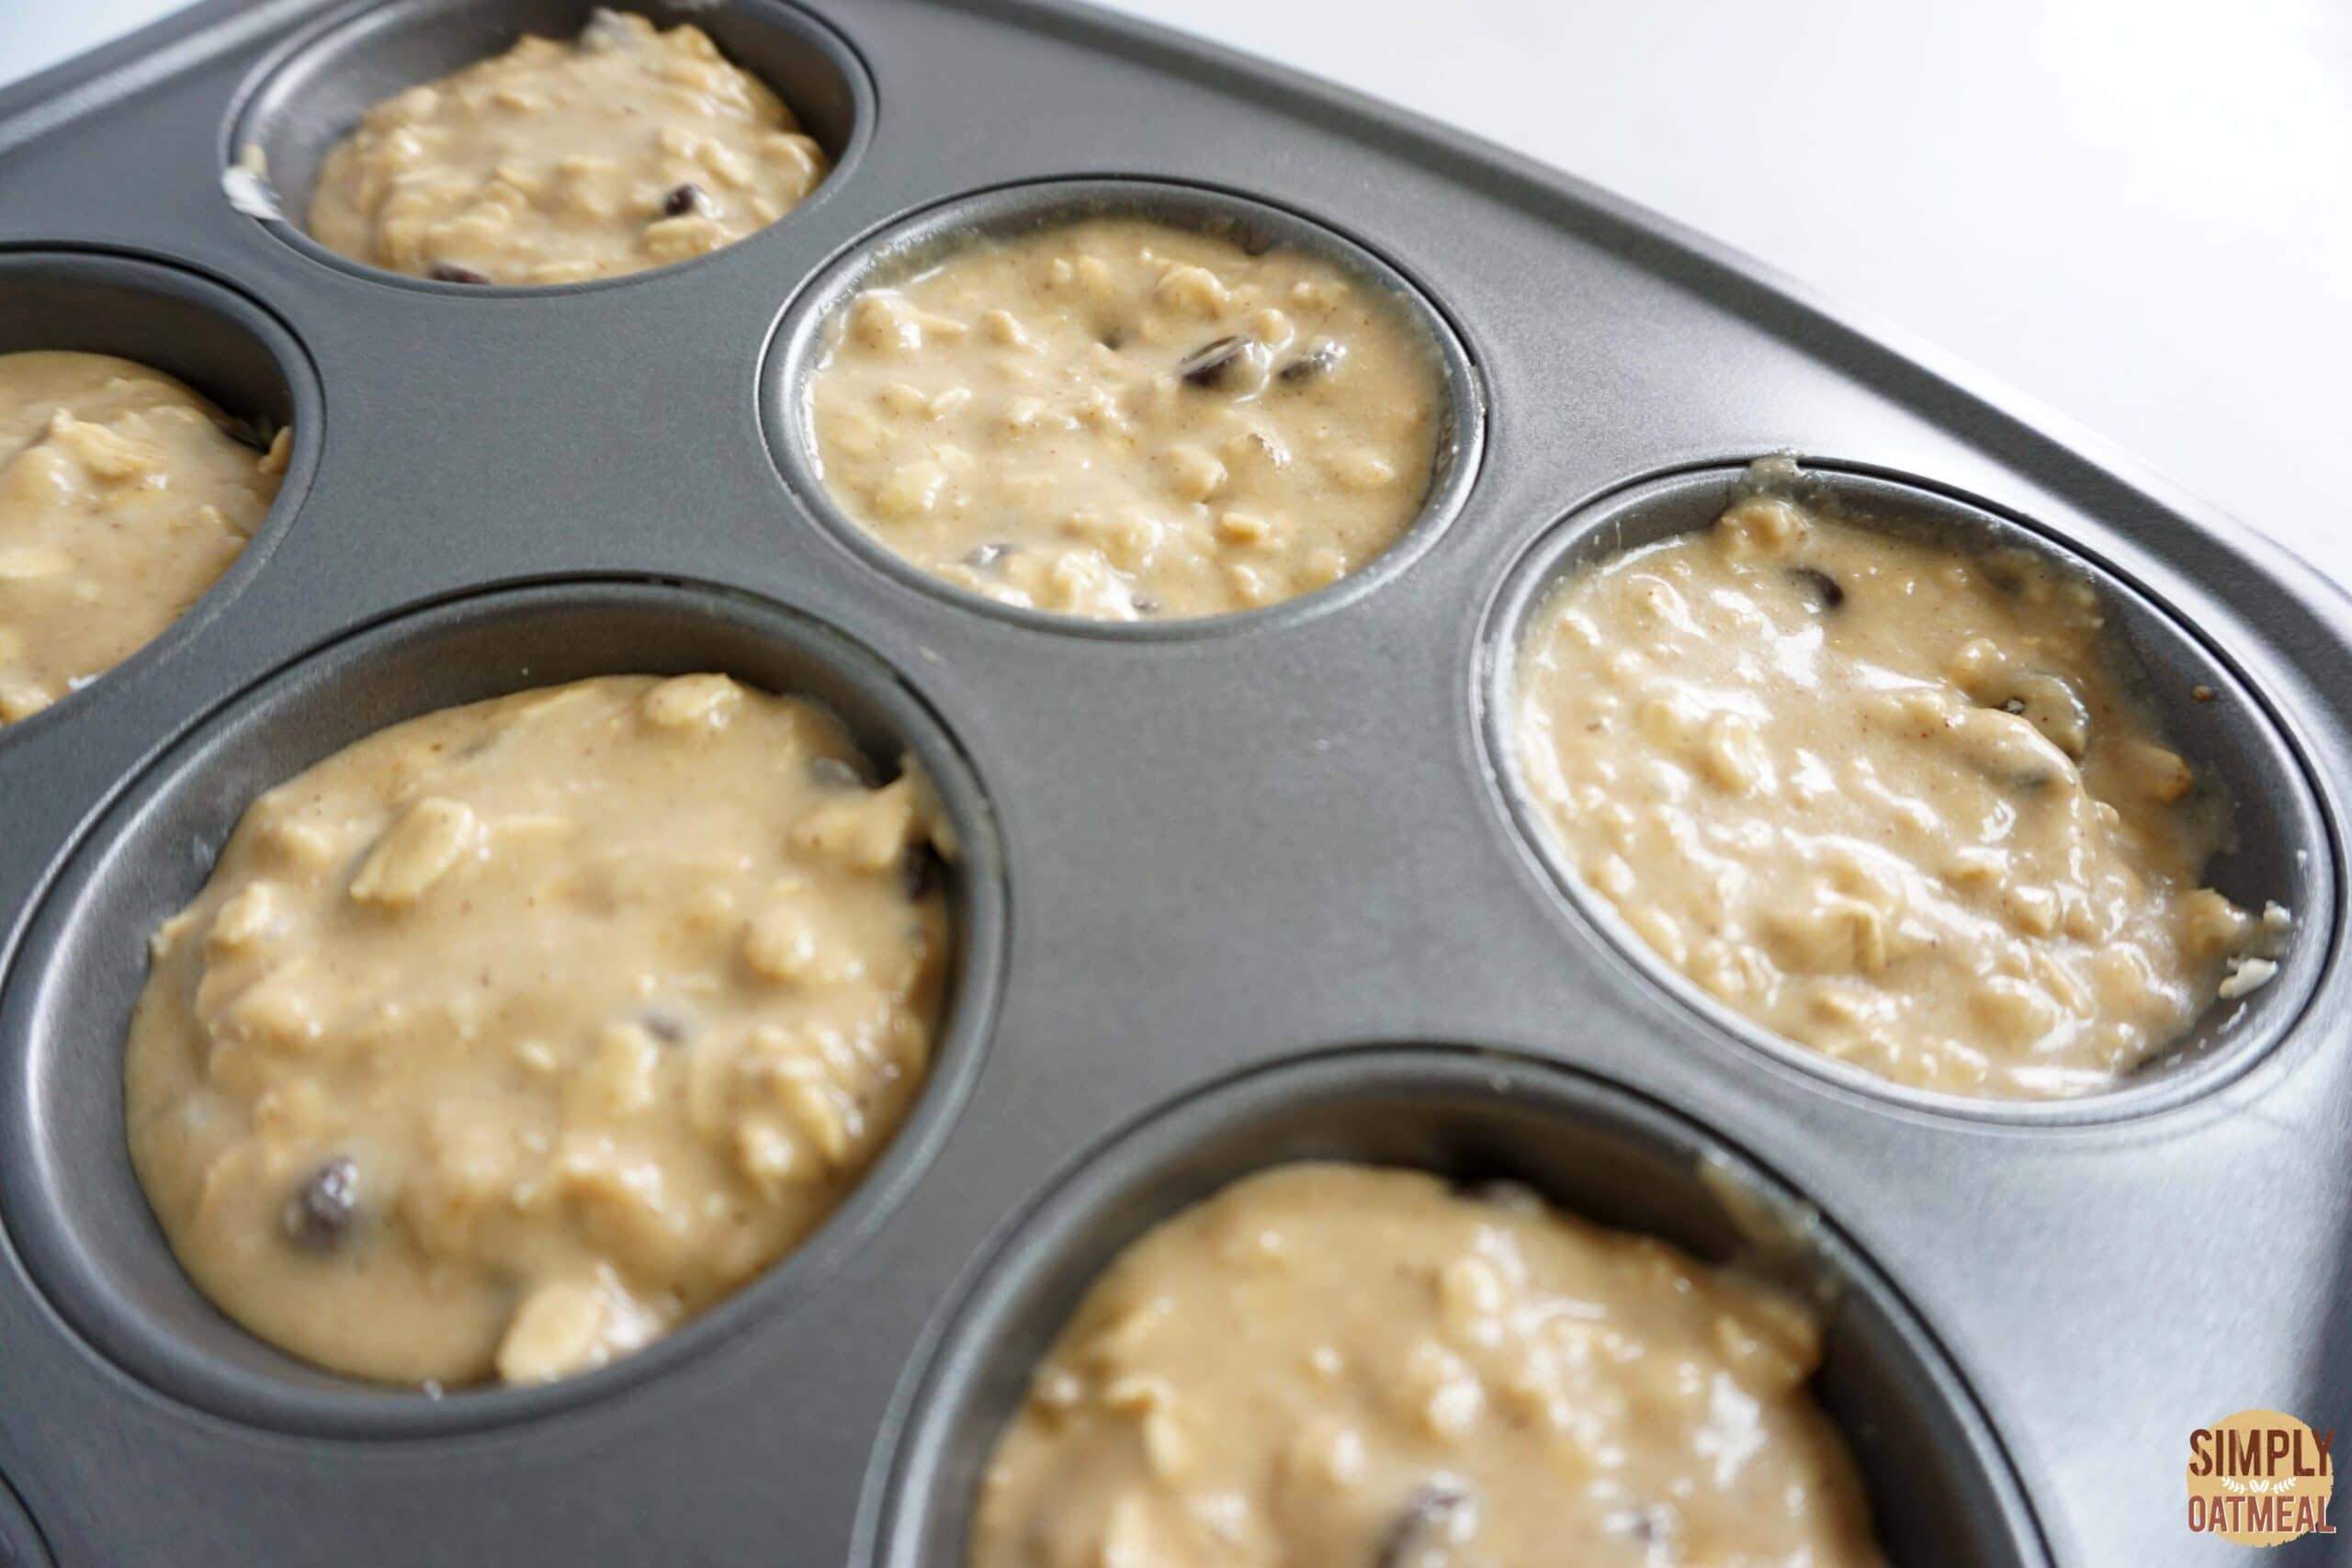 Baked chocolate chip oatmeal muffins in a muffin pan